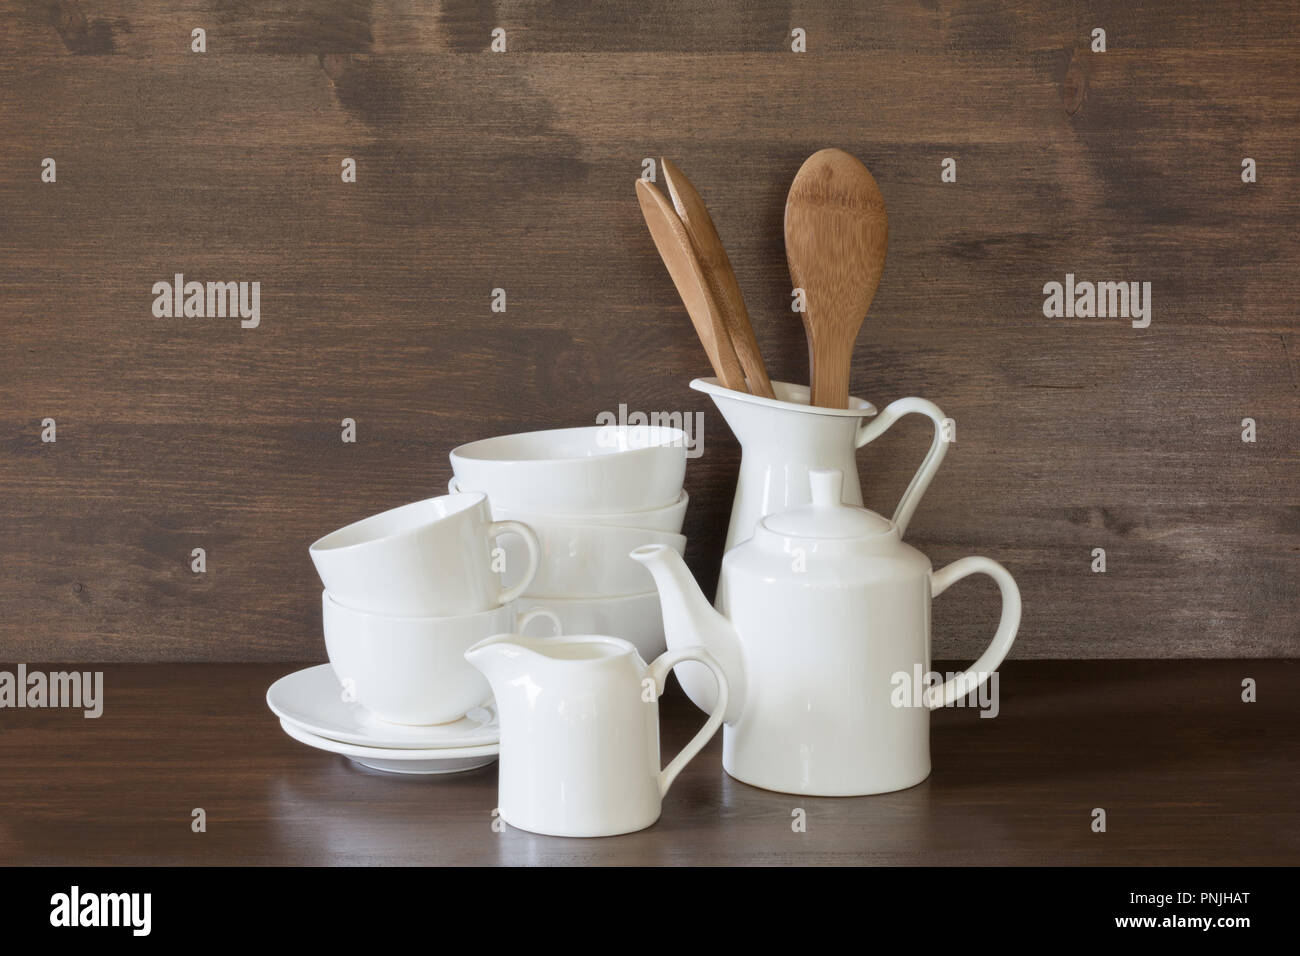 Crockery, porcelain, white utensils and other different stuff on wooden countertop. Kitchen still life as background for design. Copy space. Stock Photo